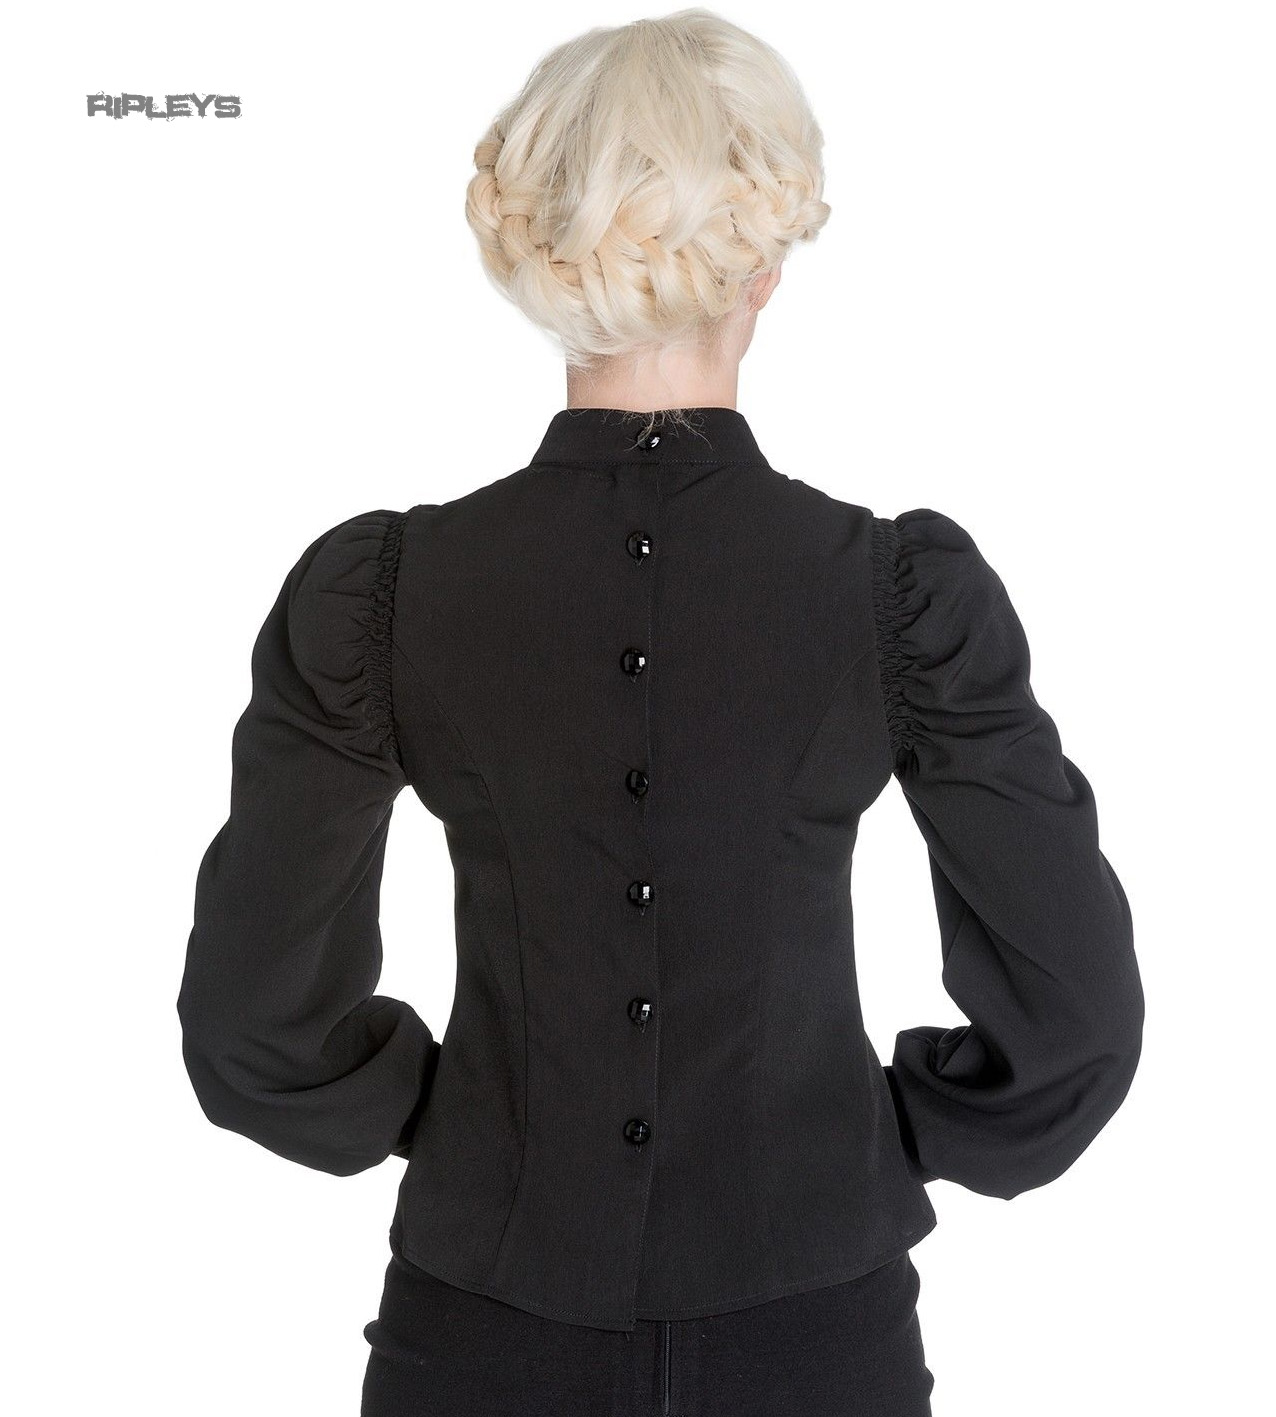 Hell-Bunny-Spin-Doctor-Vampire-Gothic-Shirt-Top-MELROSE-Blouse-All-Sizes thumbnail 4